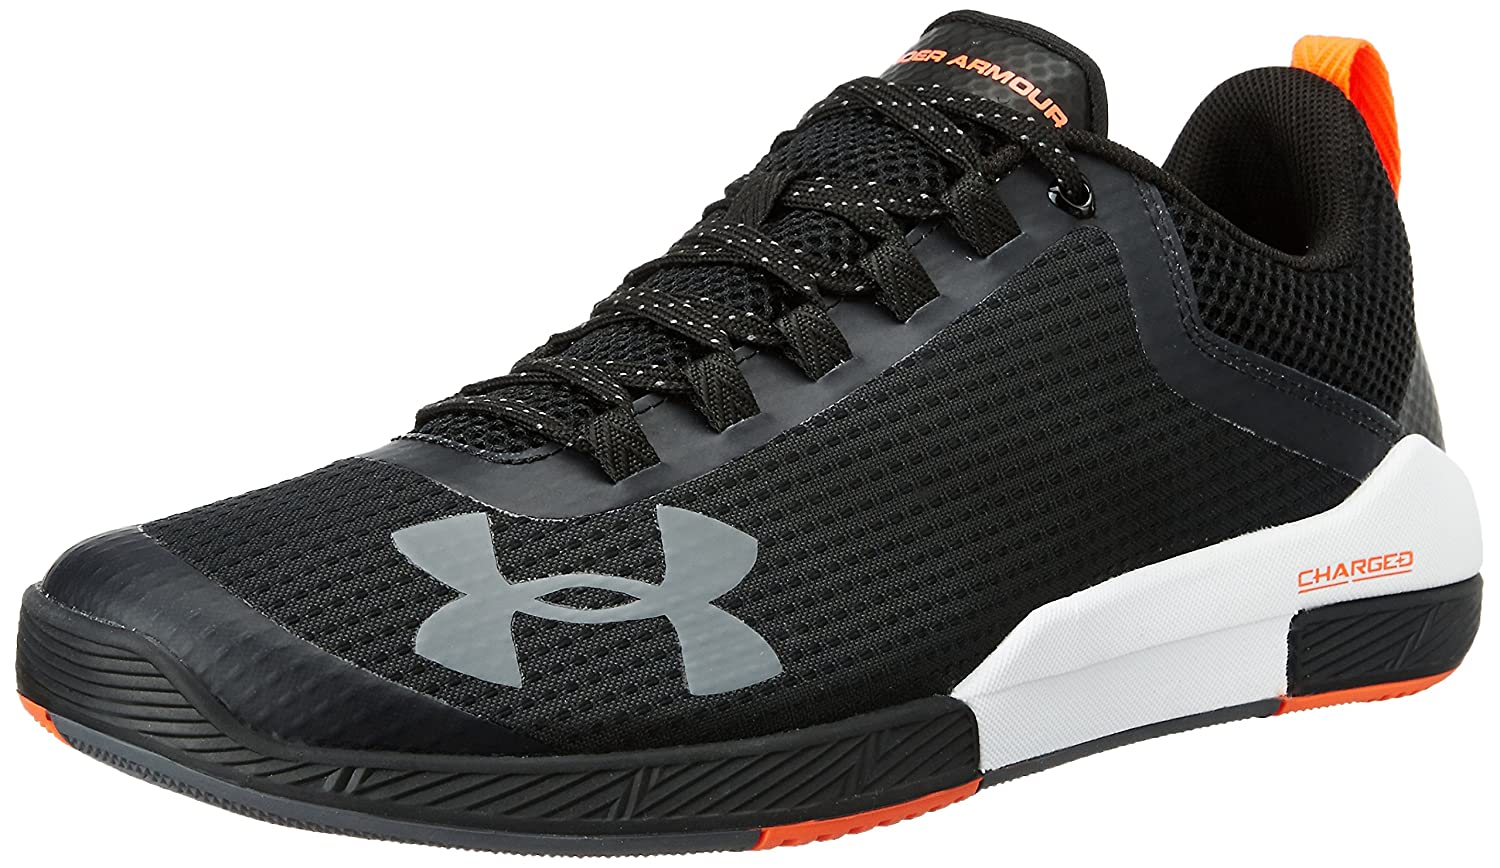 Under Armour Men's Charged Legend Cross-Trainer Shoe Under Armour Shoes